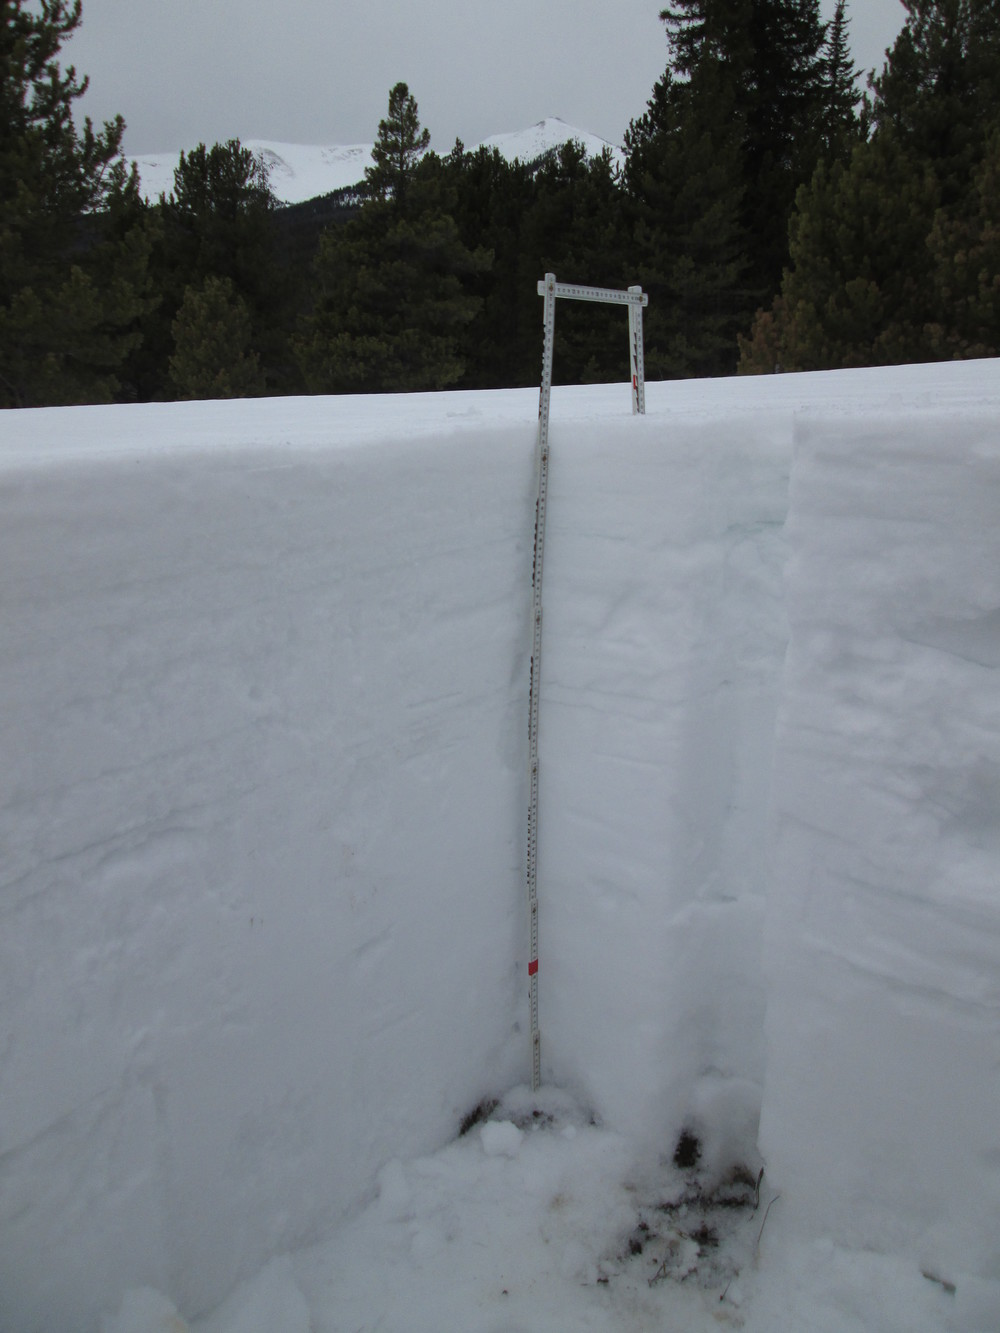 In mid-afternoon on Sunday, March 30, no dust was visible within or at the surface of the Willow Creek snow profile, seen above with Parkview Mountain in the distance.  At the time of this profile, this was the only clearly dust-free snowpack observed during this CODOS circuit of all eleven sites, and no dust was observed on the snowpack surface in the Willow Creek Pass locale.  Unfortunately, later that evening, dust layer D4 (March 30) may have fallen onto the clean snow surface at Willow Creek Pass, with minimal (or no) fresh snow covering the new dust.  If that was the case, perhaps within hours the next day D4 may have been extensively exposed and significantly reducing snow albedo until fresh snowfall beginning April 2 began to bury D4.  As long as a possible D4 layer was exposed to direct solar radiation in that interim, melt water percolating downward from the dirty snow surface would have hastened the warming of the underlying Willow Creek watershed snowpack toward isothermal.